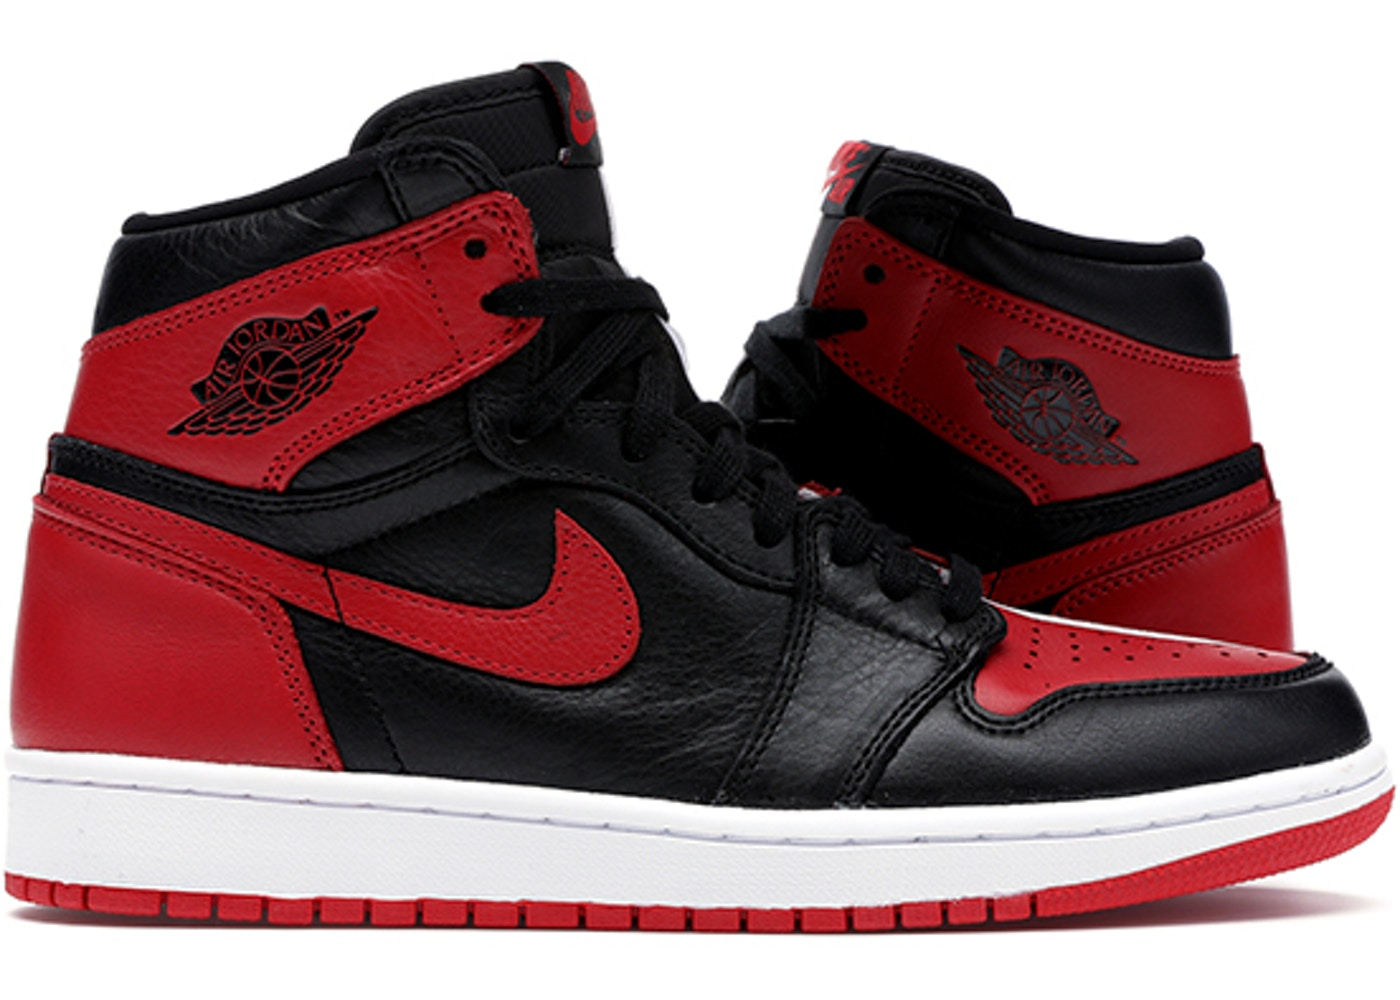 bas prix 28de9 862d7 Jordan 1 Retro High Homage To Home (Non-numbered) - 861428-061